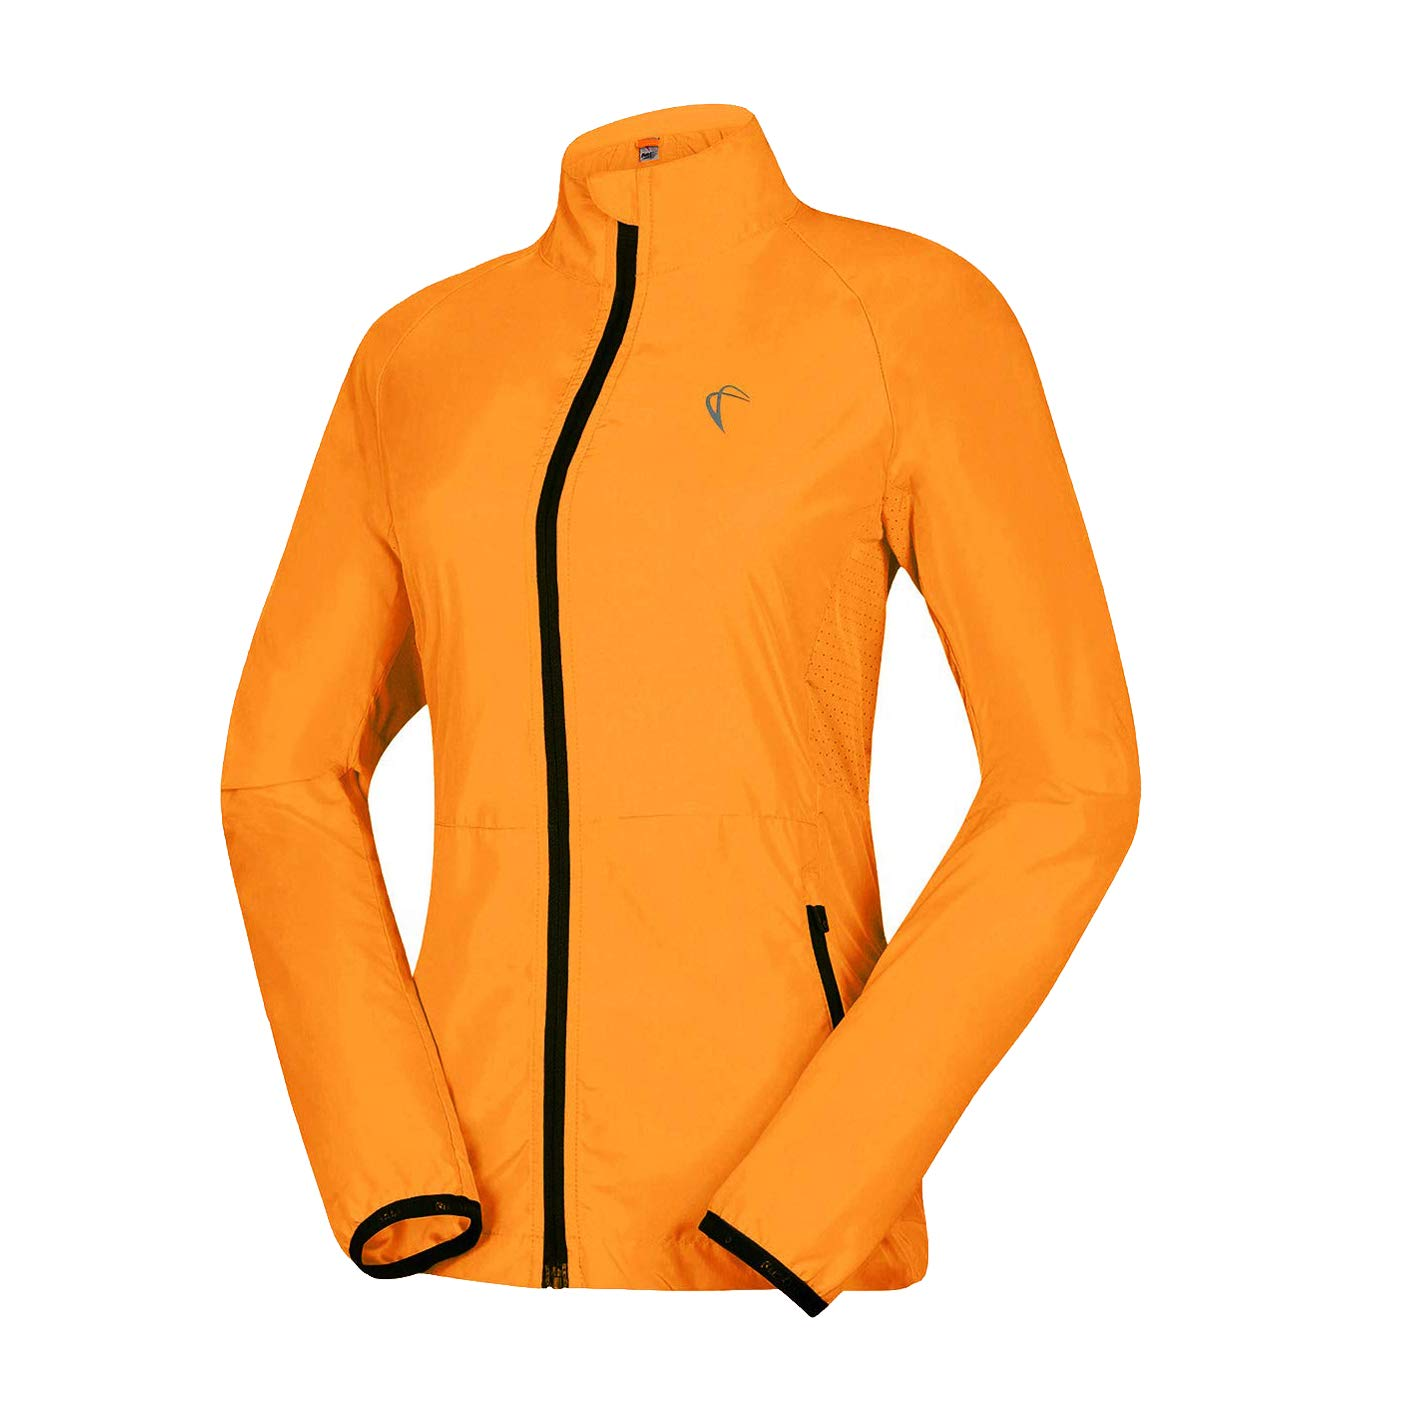 J.CARP Women's Packable Windbreaker Jacket, Super Lightweight and Visible, Outdoor Active Cycling Running Skin Coat, Visual-Lemon L by J.CARP